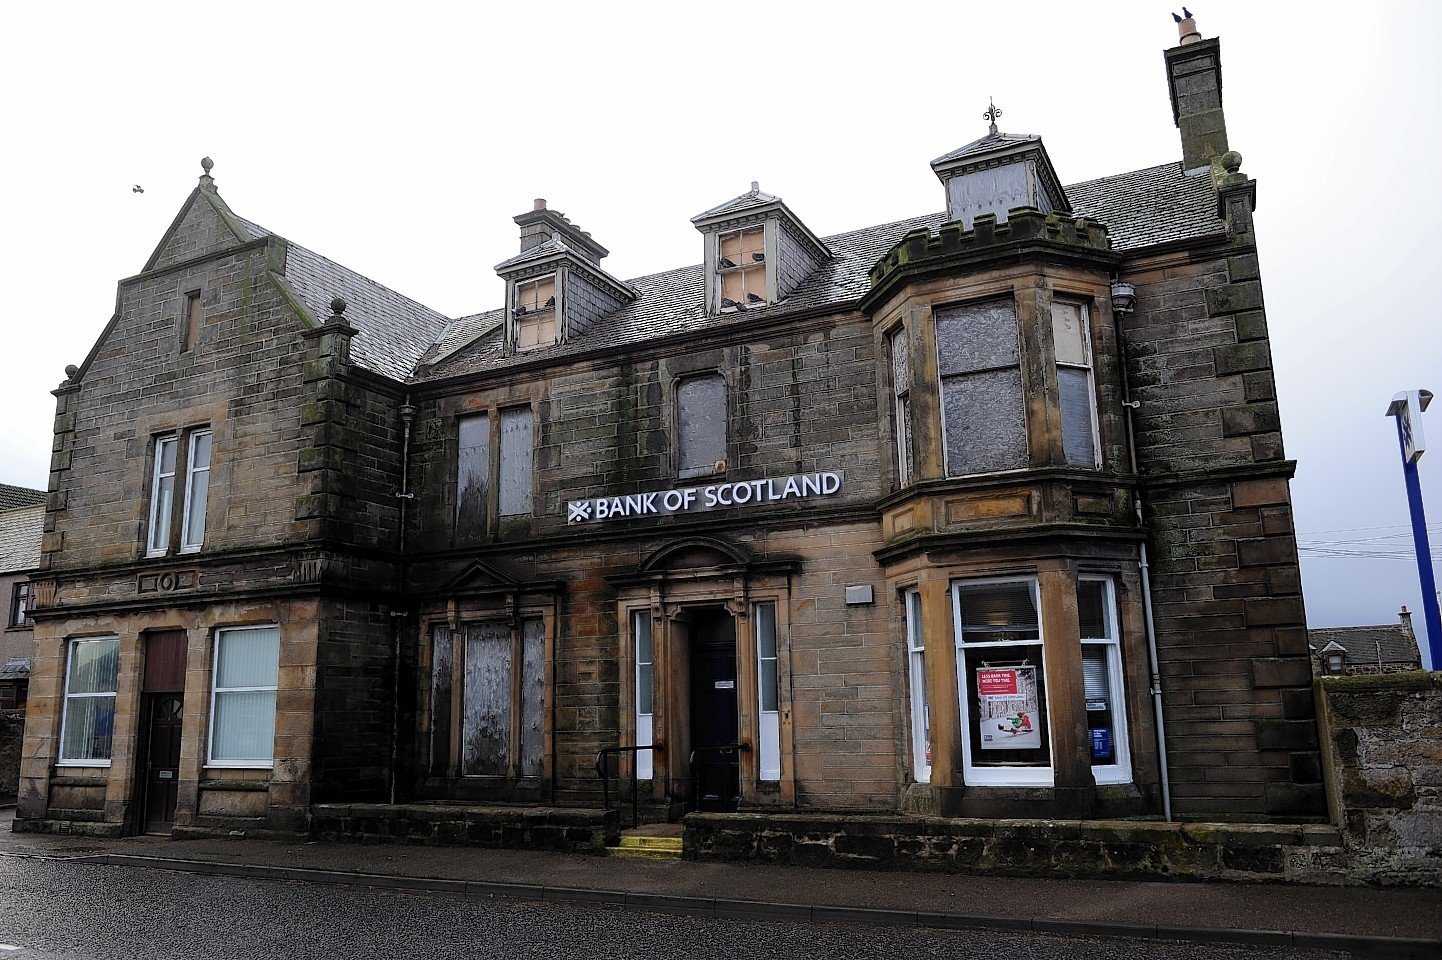 Bank of Scotland in Burghead